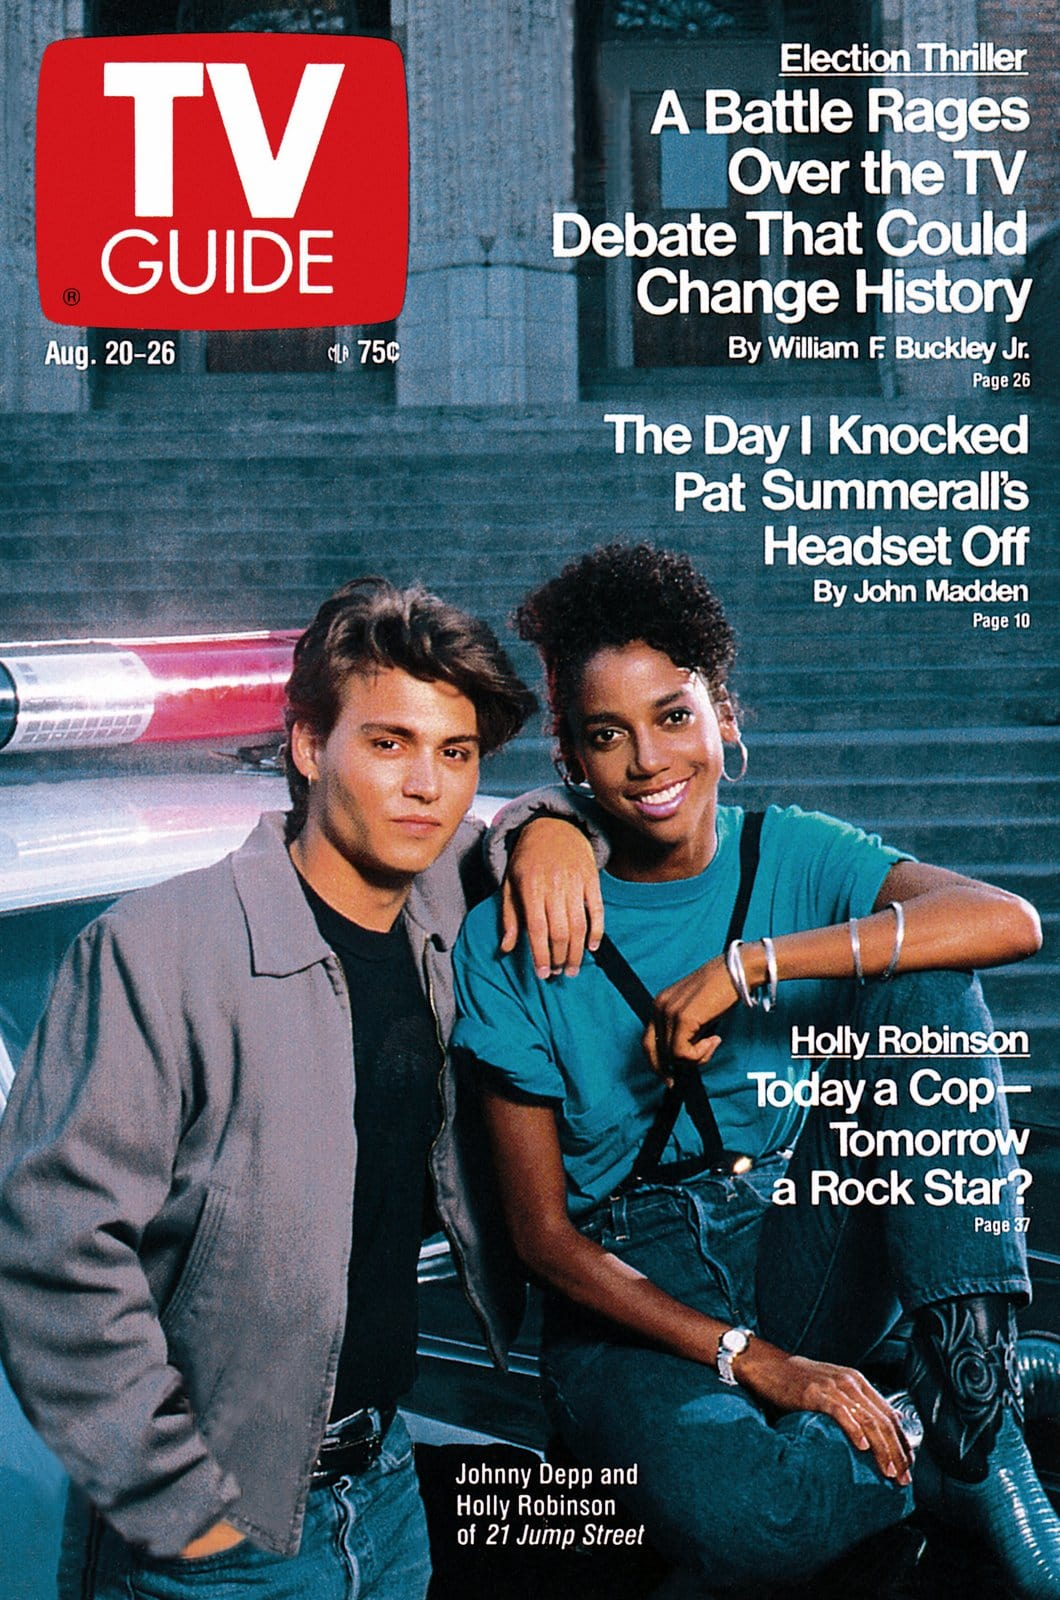 Johnny Depp and Holly Robinson - 21 Jump Street TV Guide cover - August 20, 1988